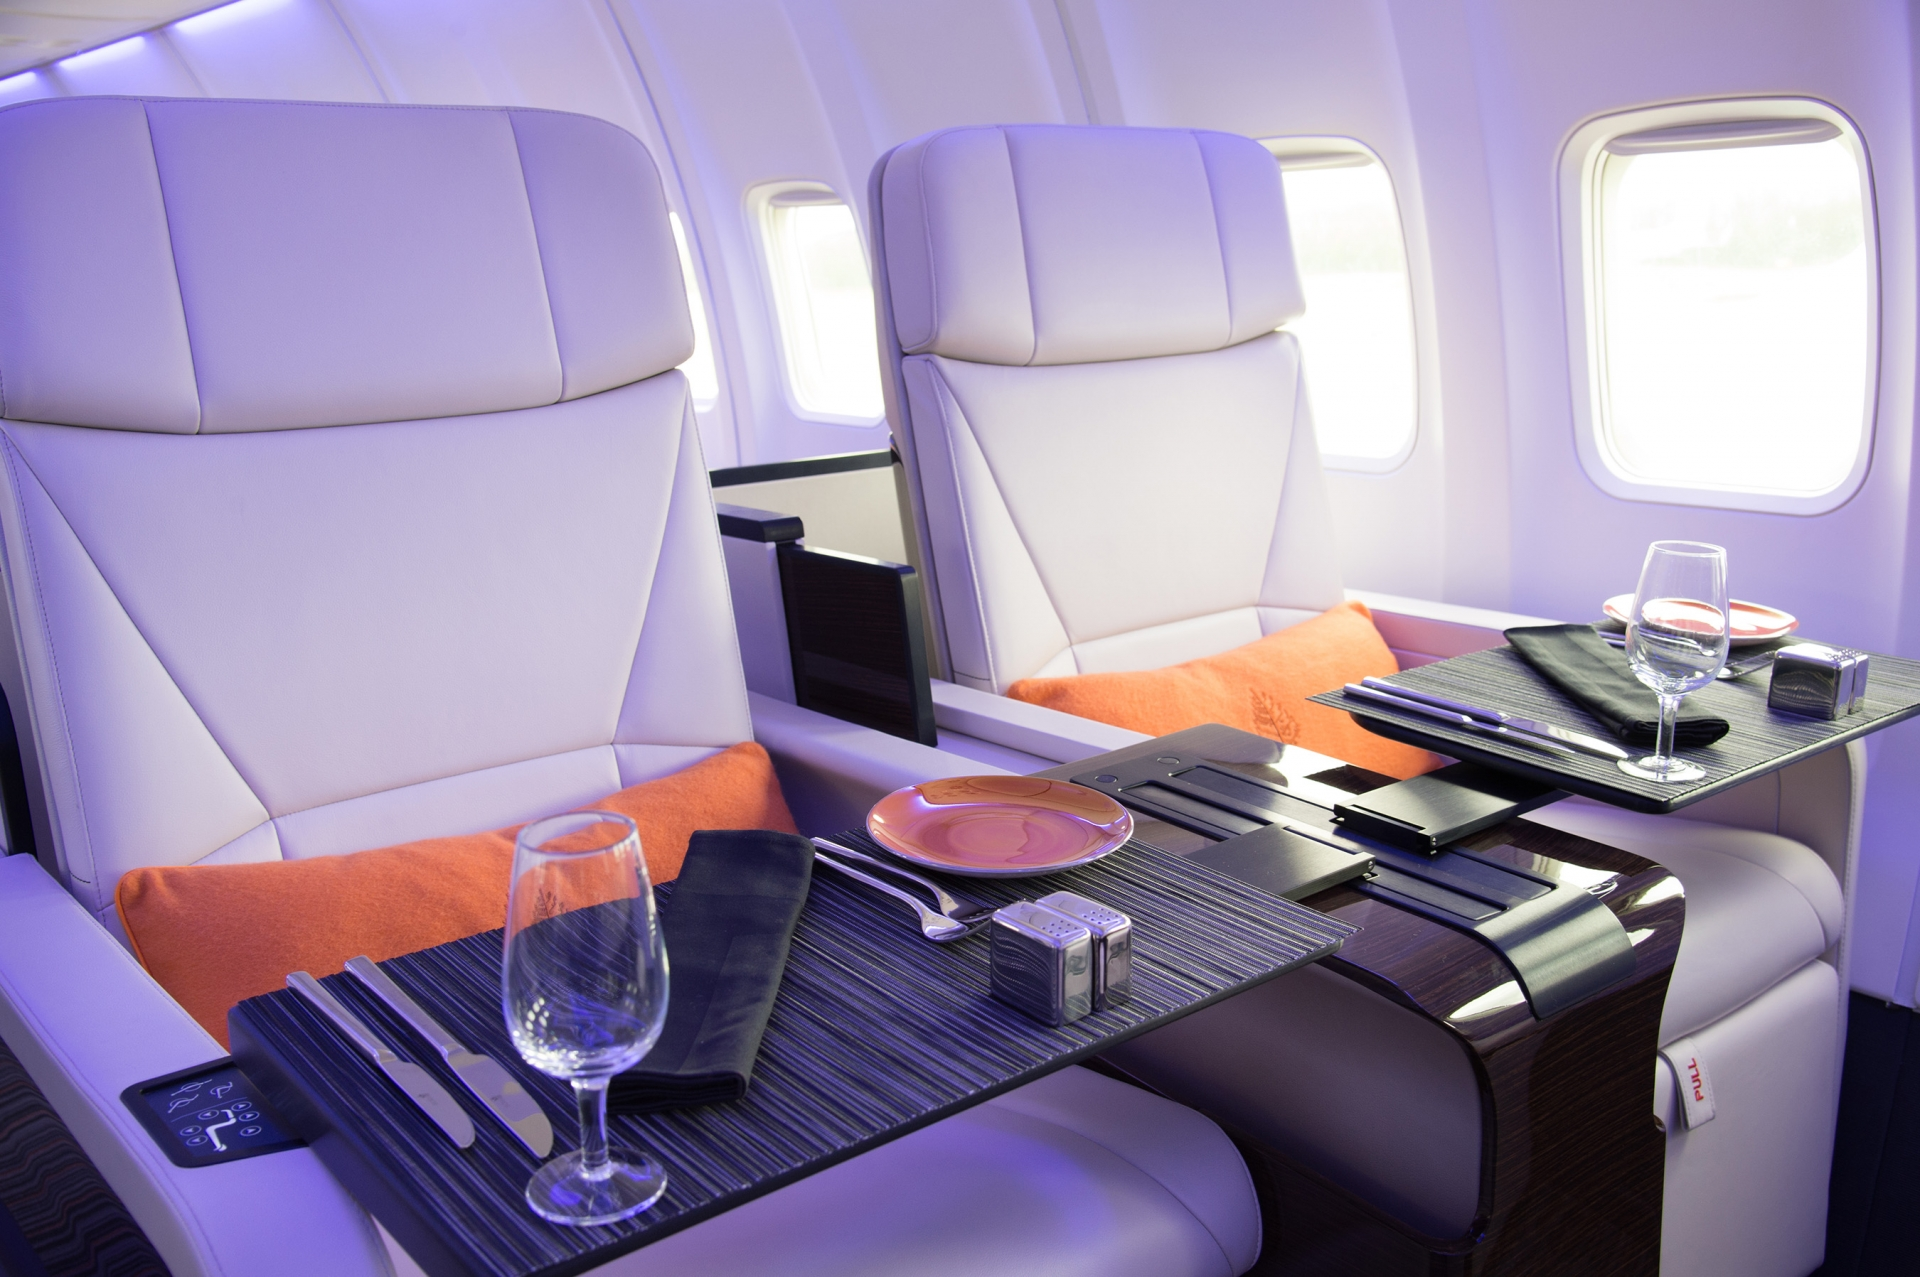 This luxury jet will get your trip started on the right foot